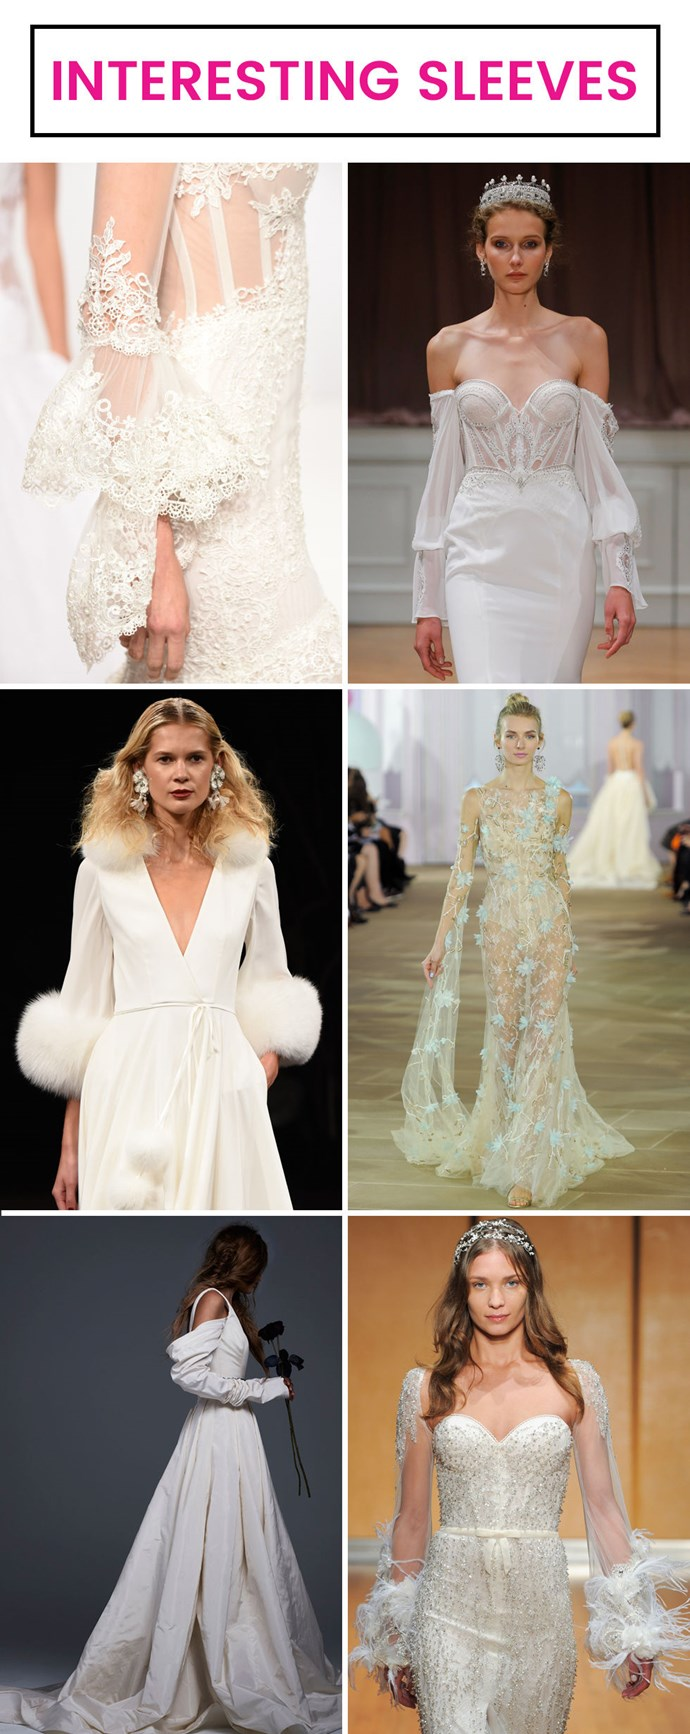 Wedding gowns can definitely get too busy if you're not careful, but designers were paying attention to sleeves this season, with flourishes added to the cuffs and dangling skirt-length sleeves.